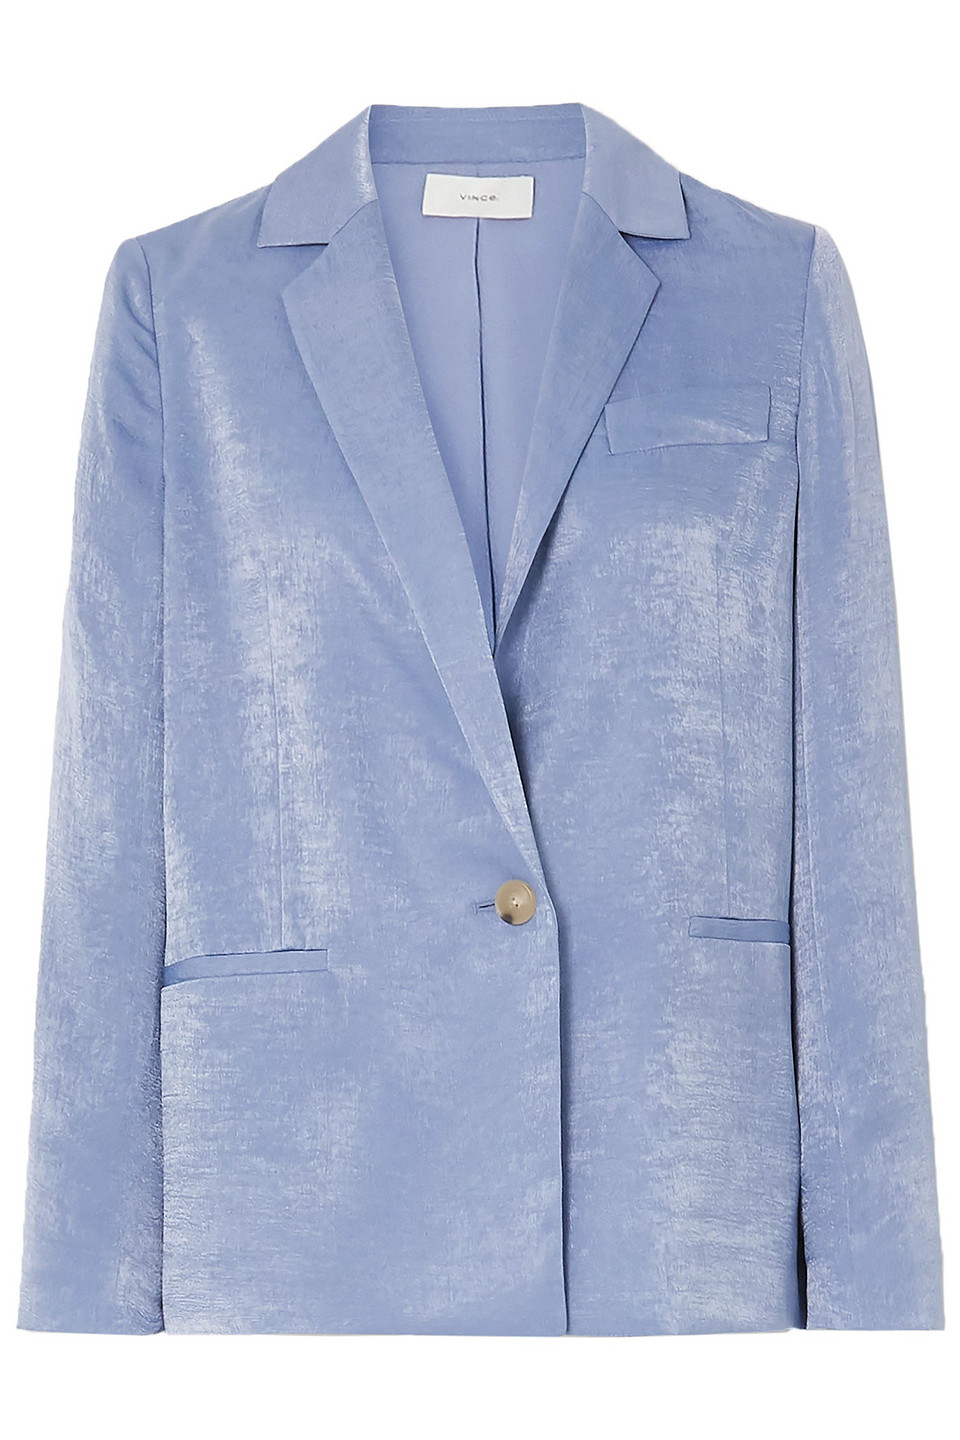 Vince | Vince. Woman Hammered-satin Blazer Light Blue | Clouty